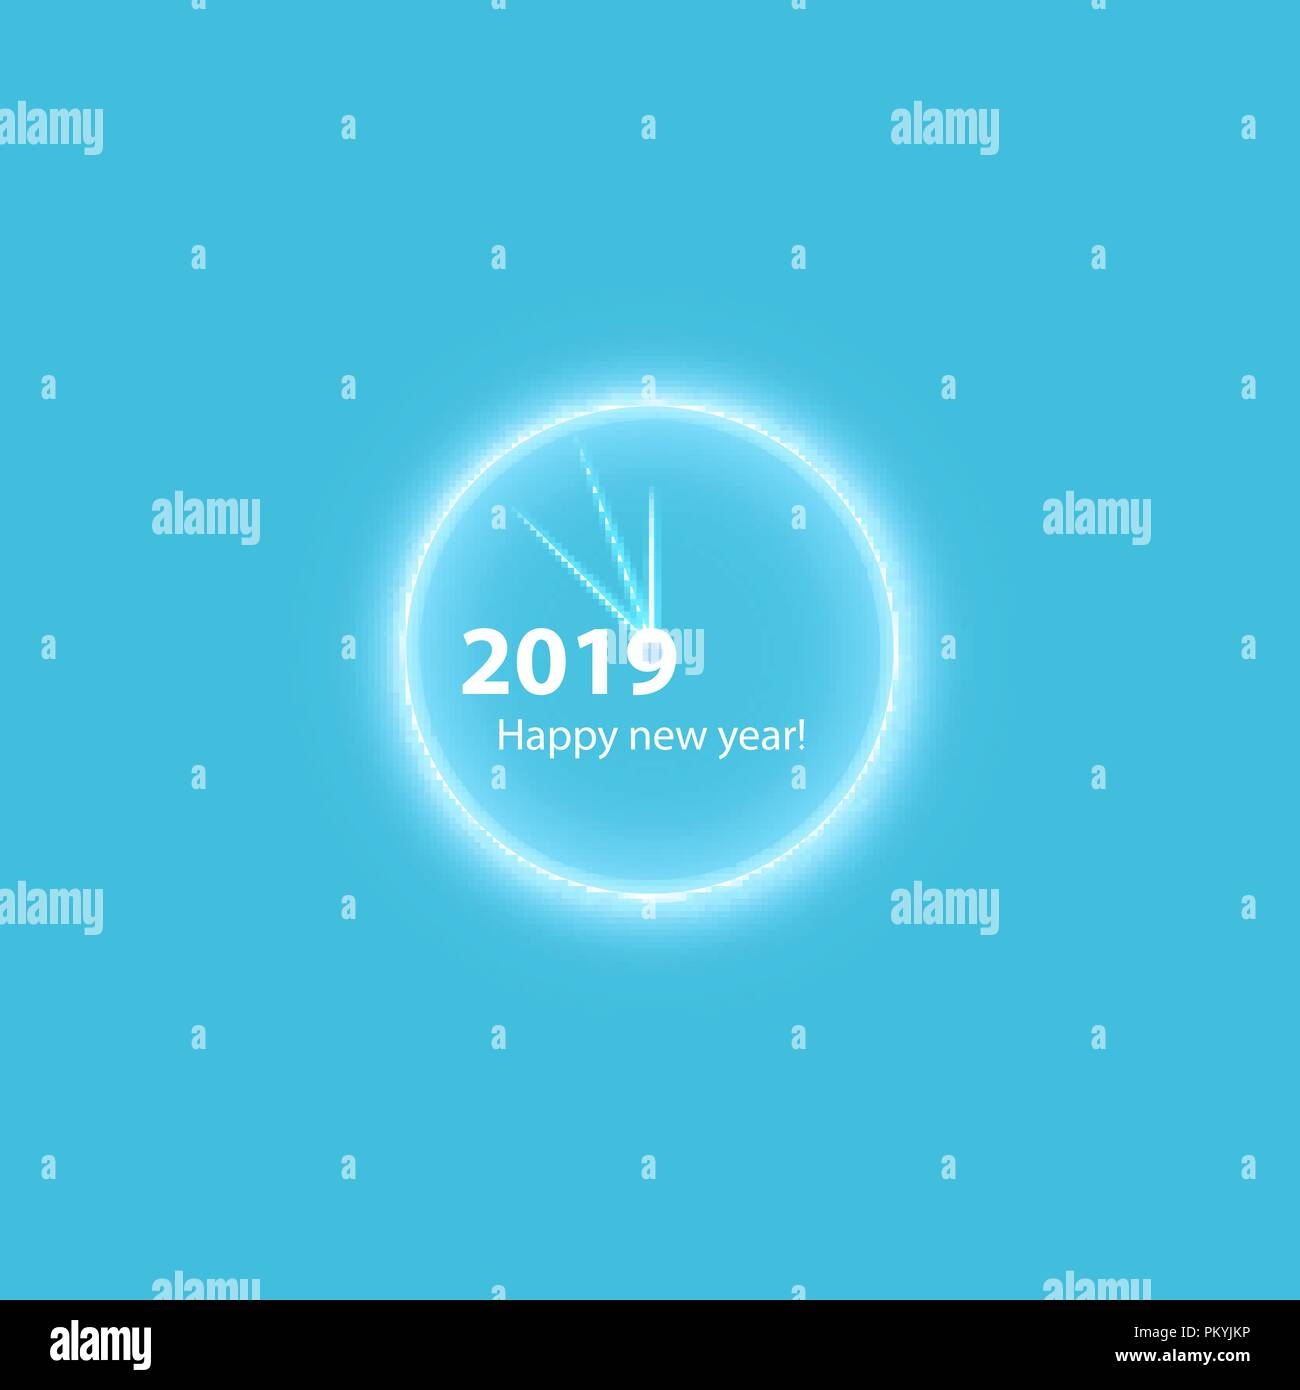 christmas party poster with a glowing gold magical clock happy 2019 new year flyer greeting card invitation menu design template vector illustration